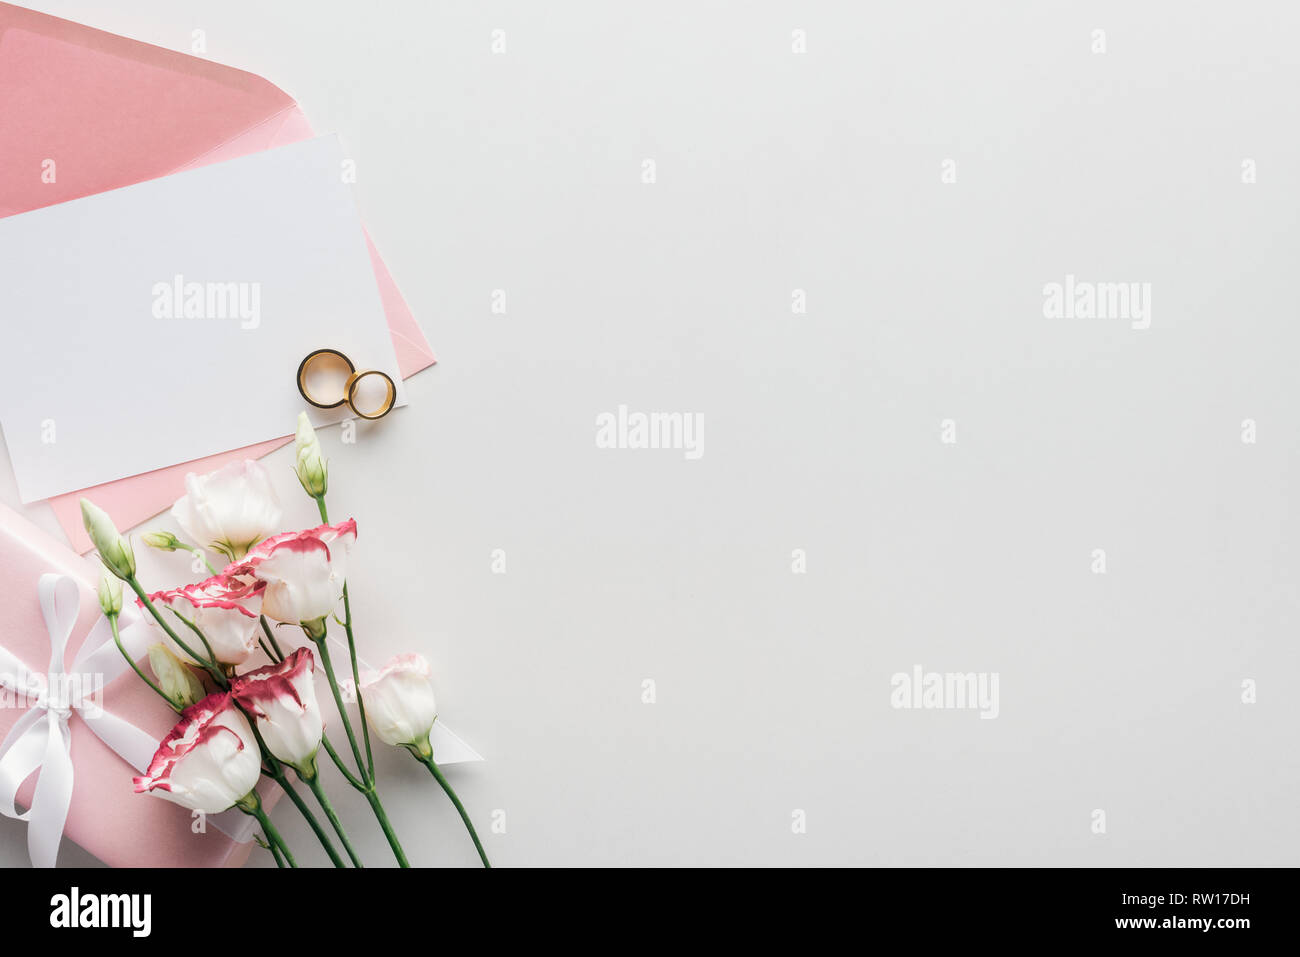 Top View Of Empty Card With Pink Envelope Flowers Wrapped